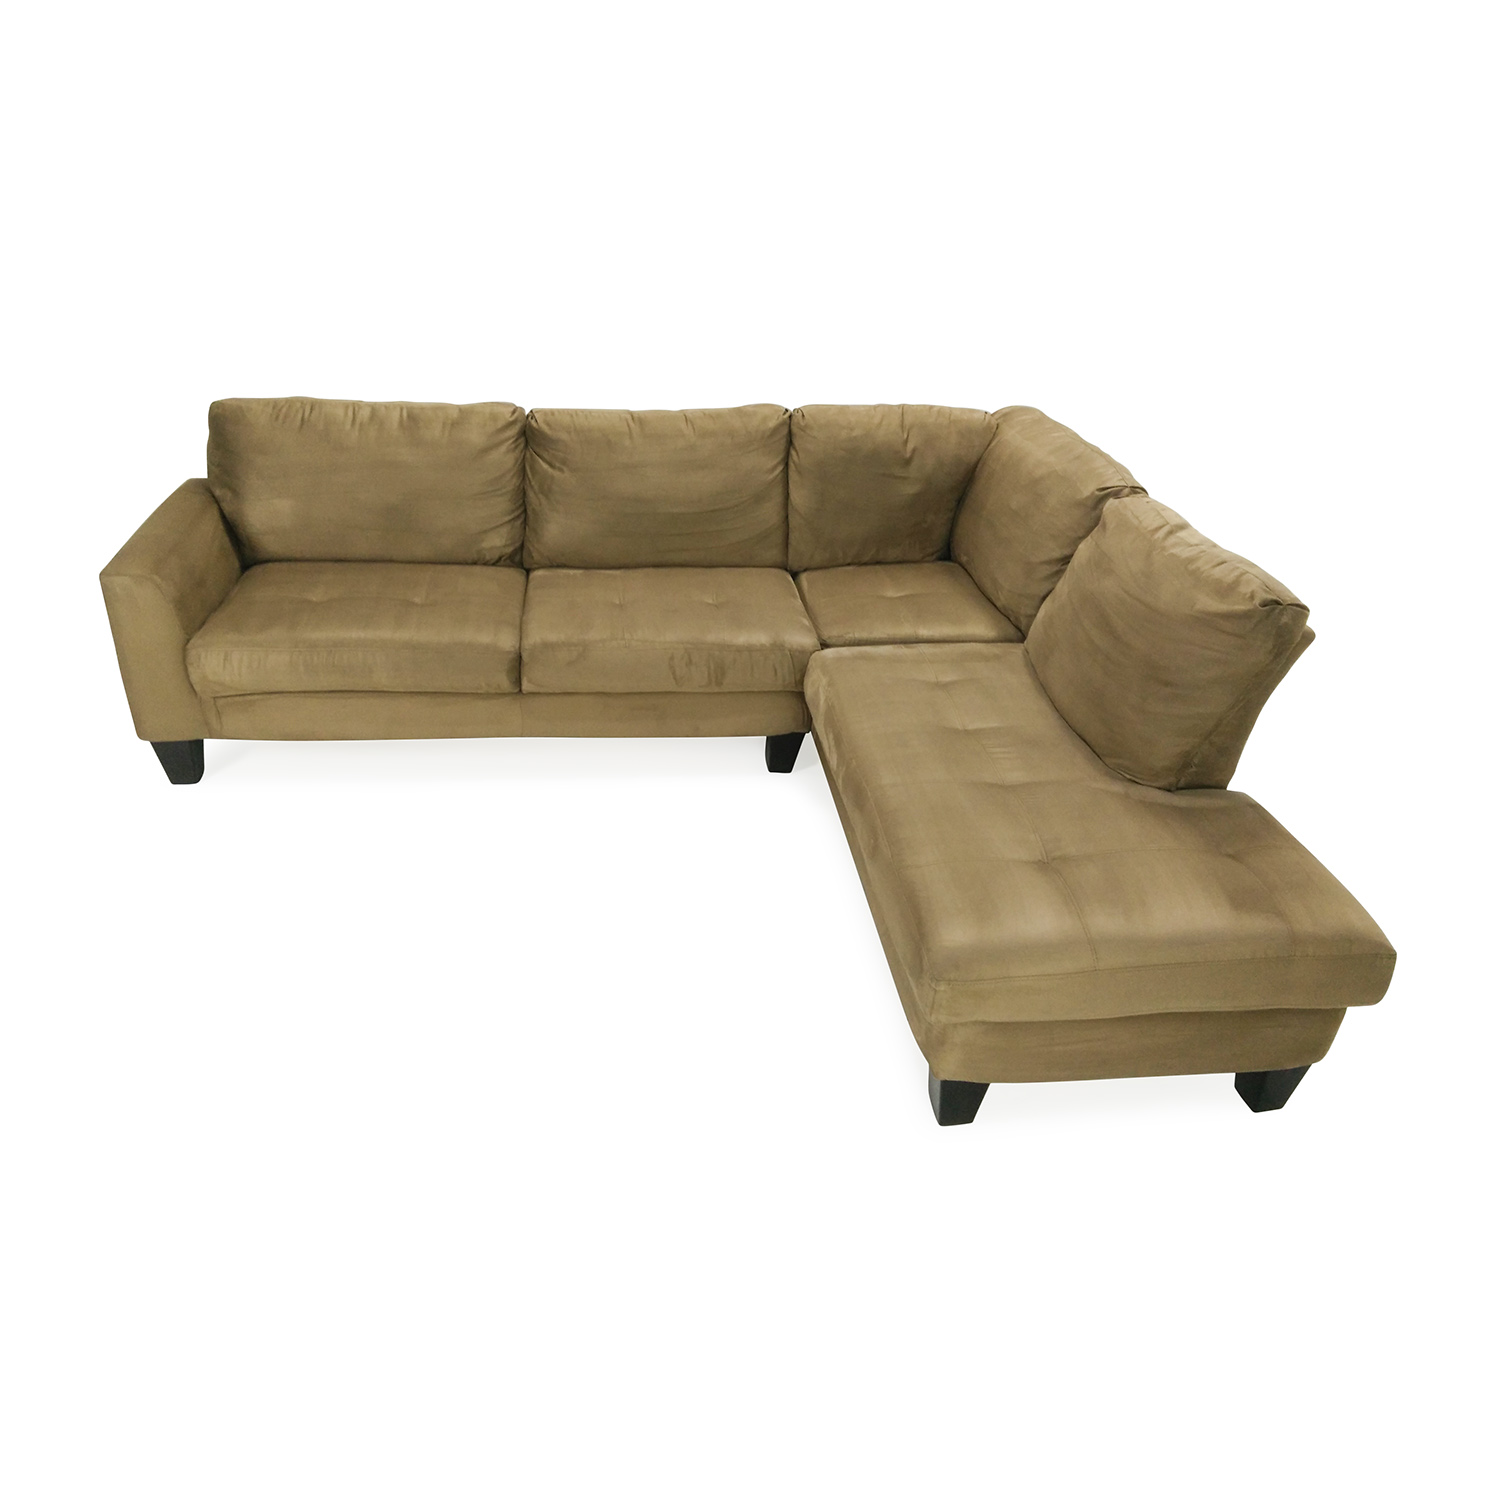 55 off bob39s furniture bob39s furniture brown sectional for Bobs used furniture